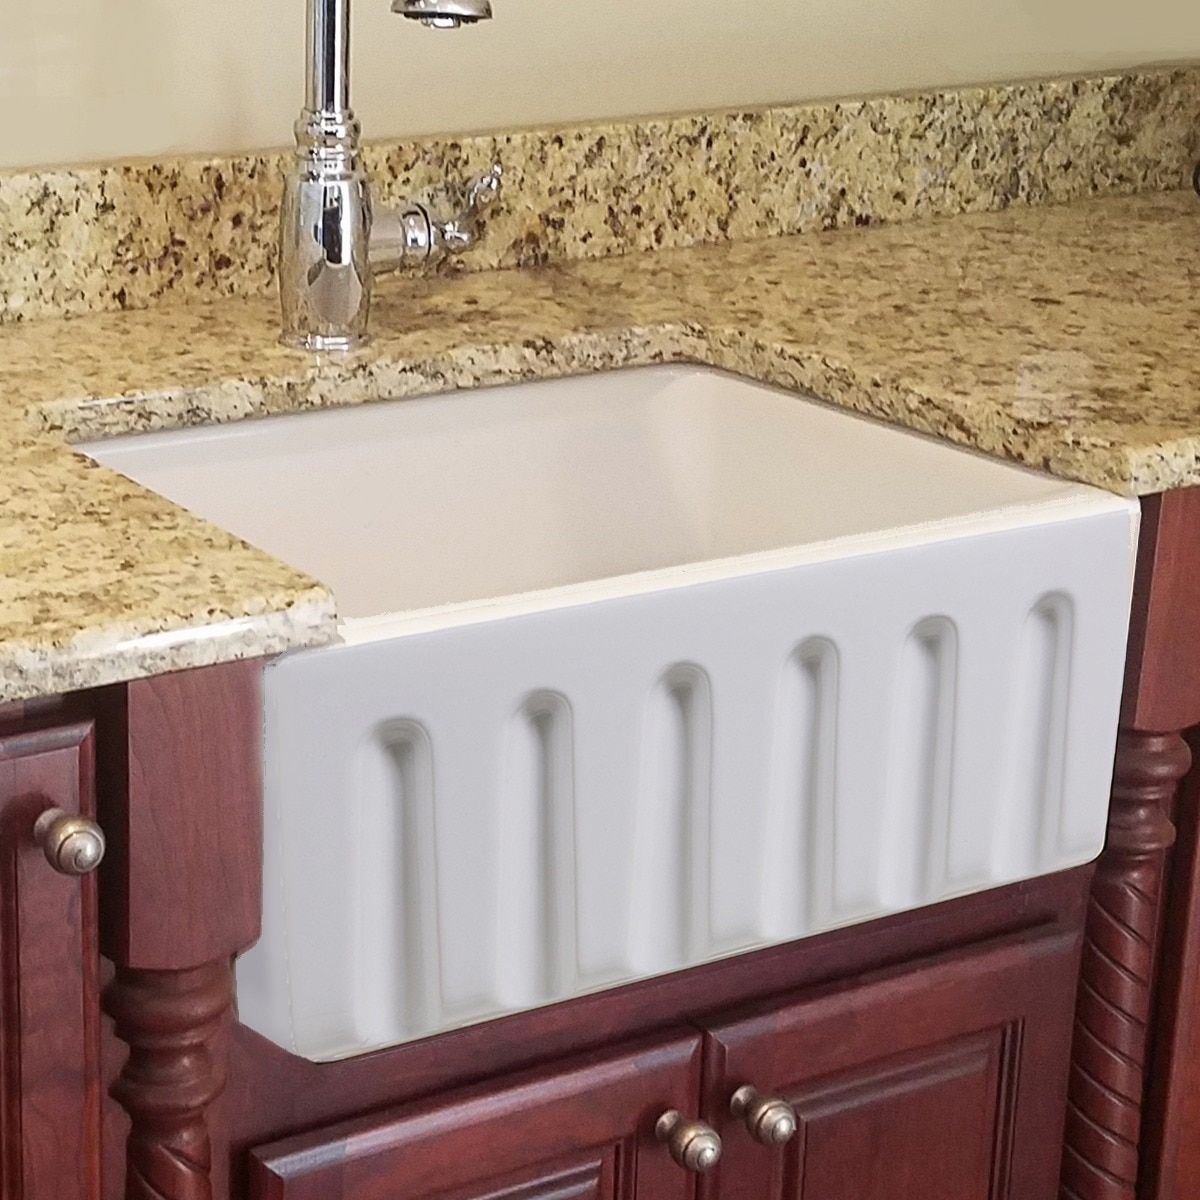 Highpoint Collection 24 Inch Single Bowl Reversible Fireclay Farmhouse Kitchen Sink Farmhouse Sink Kitchen Sink Stainless Steel Kitchen Sink Undermount